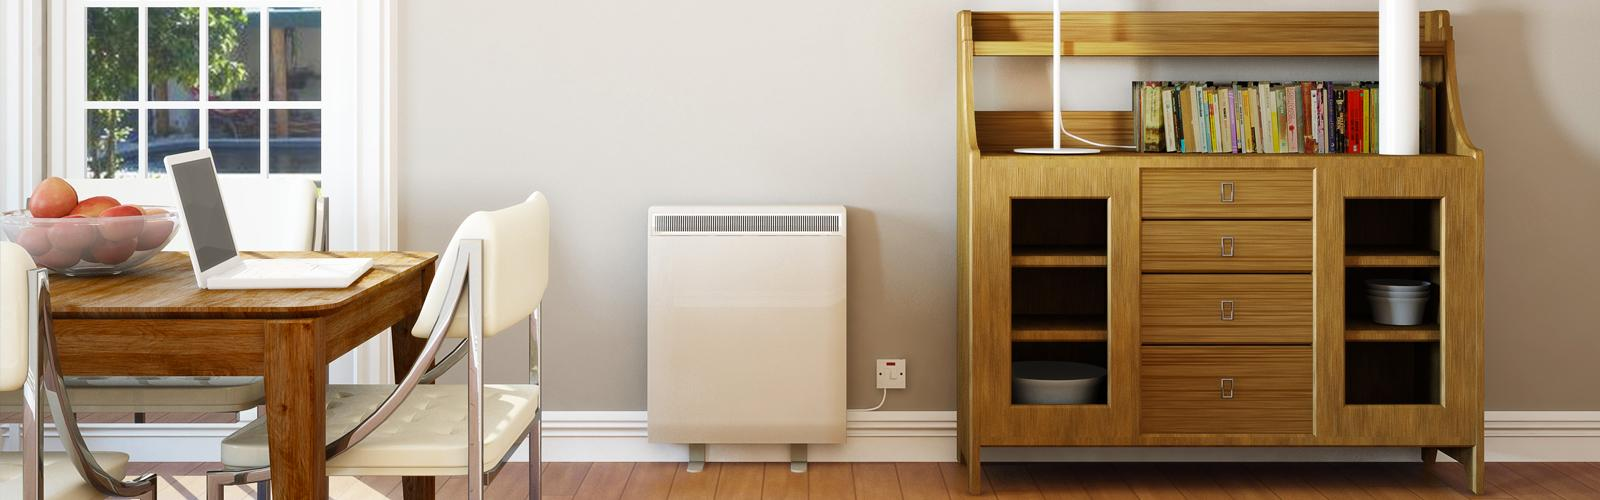 Installed Electric Heating Storage Heaters From Dimplex